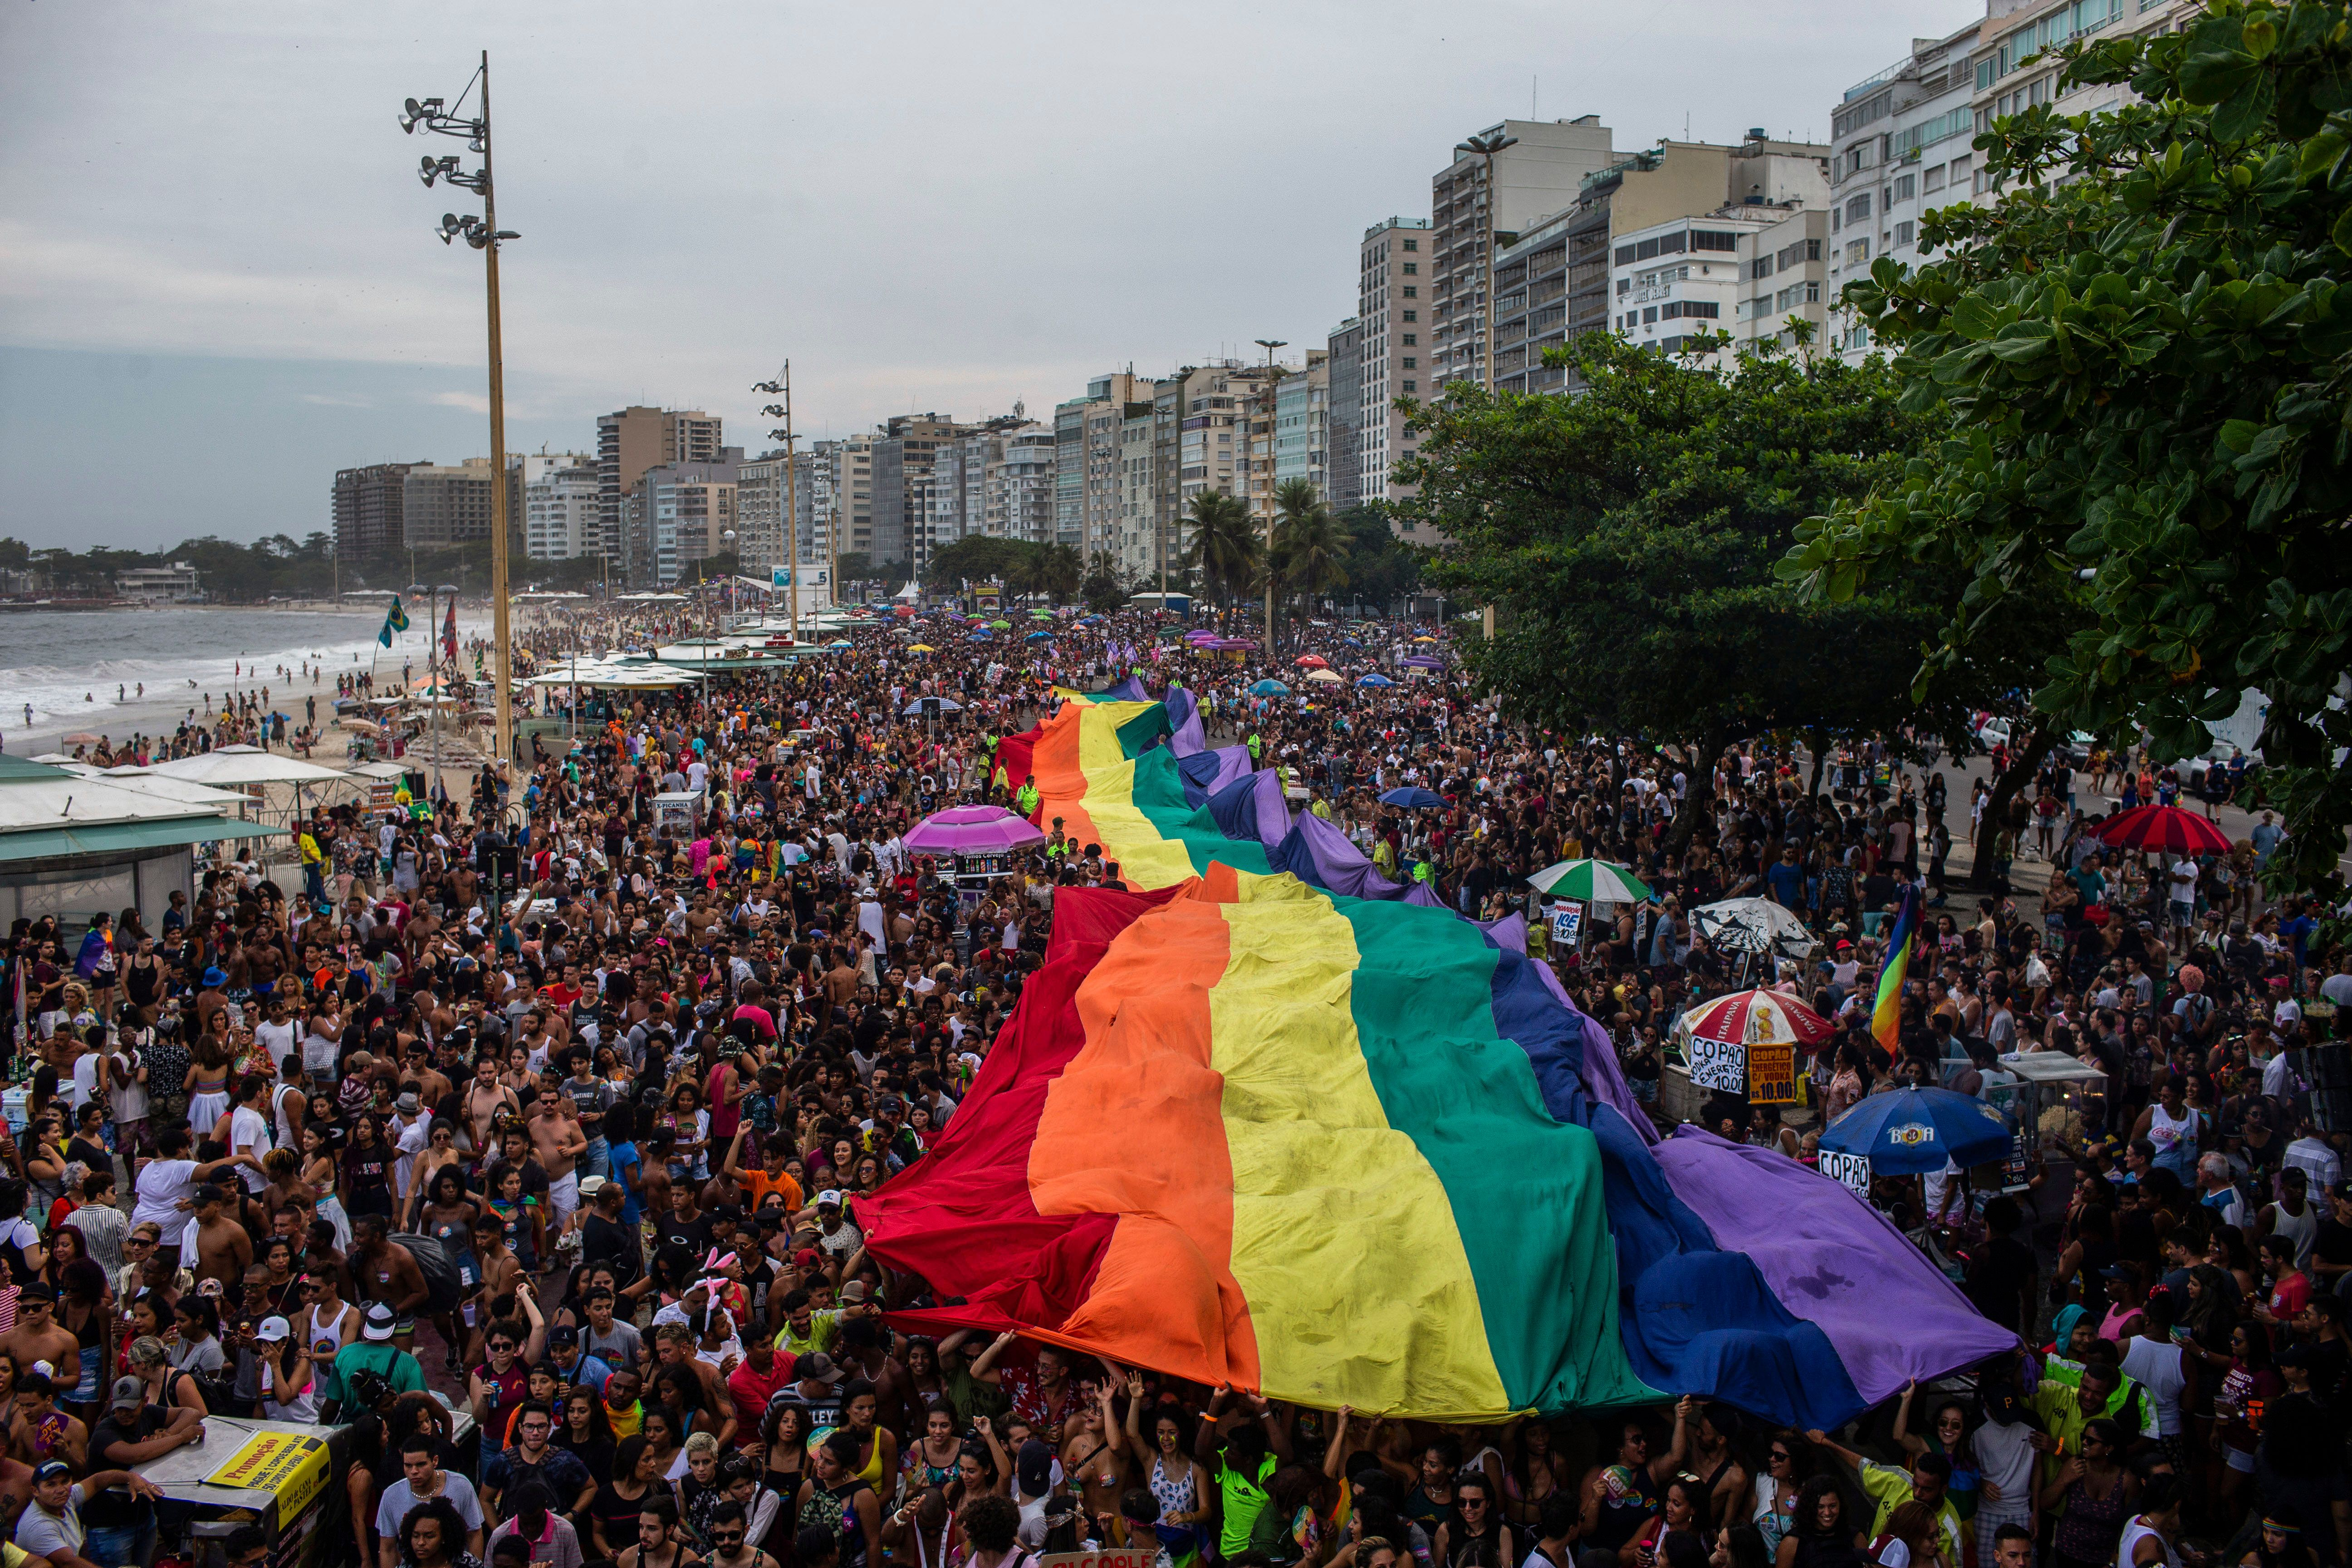 A Grisly Killing Shows The Rampant Transphobia In Brazil